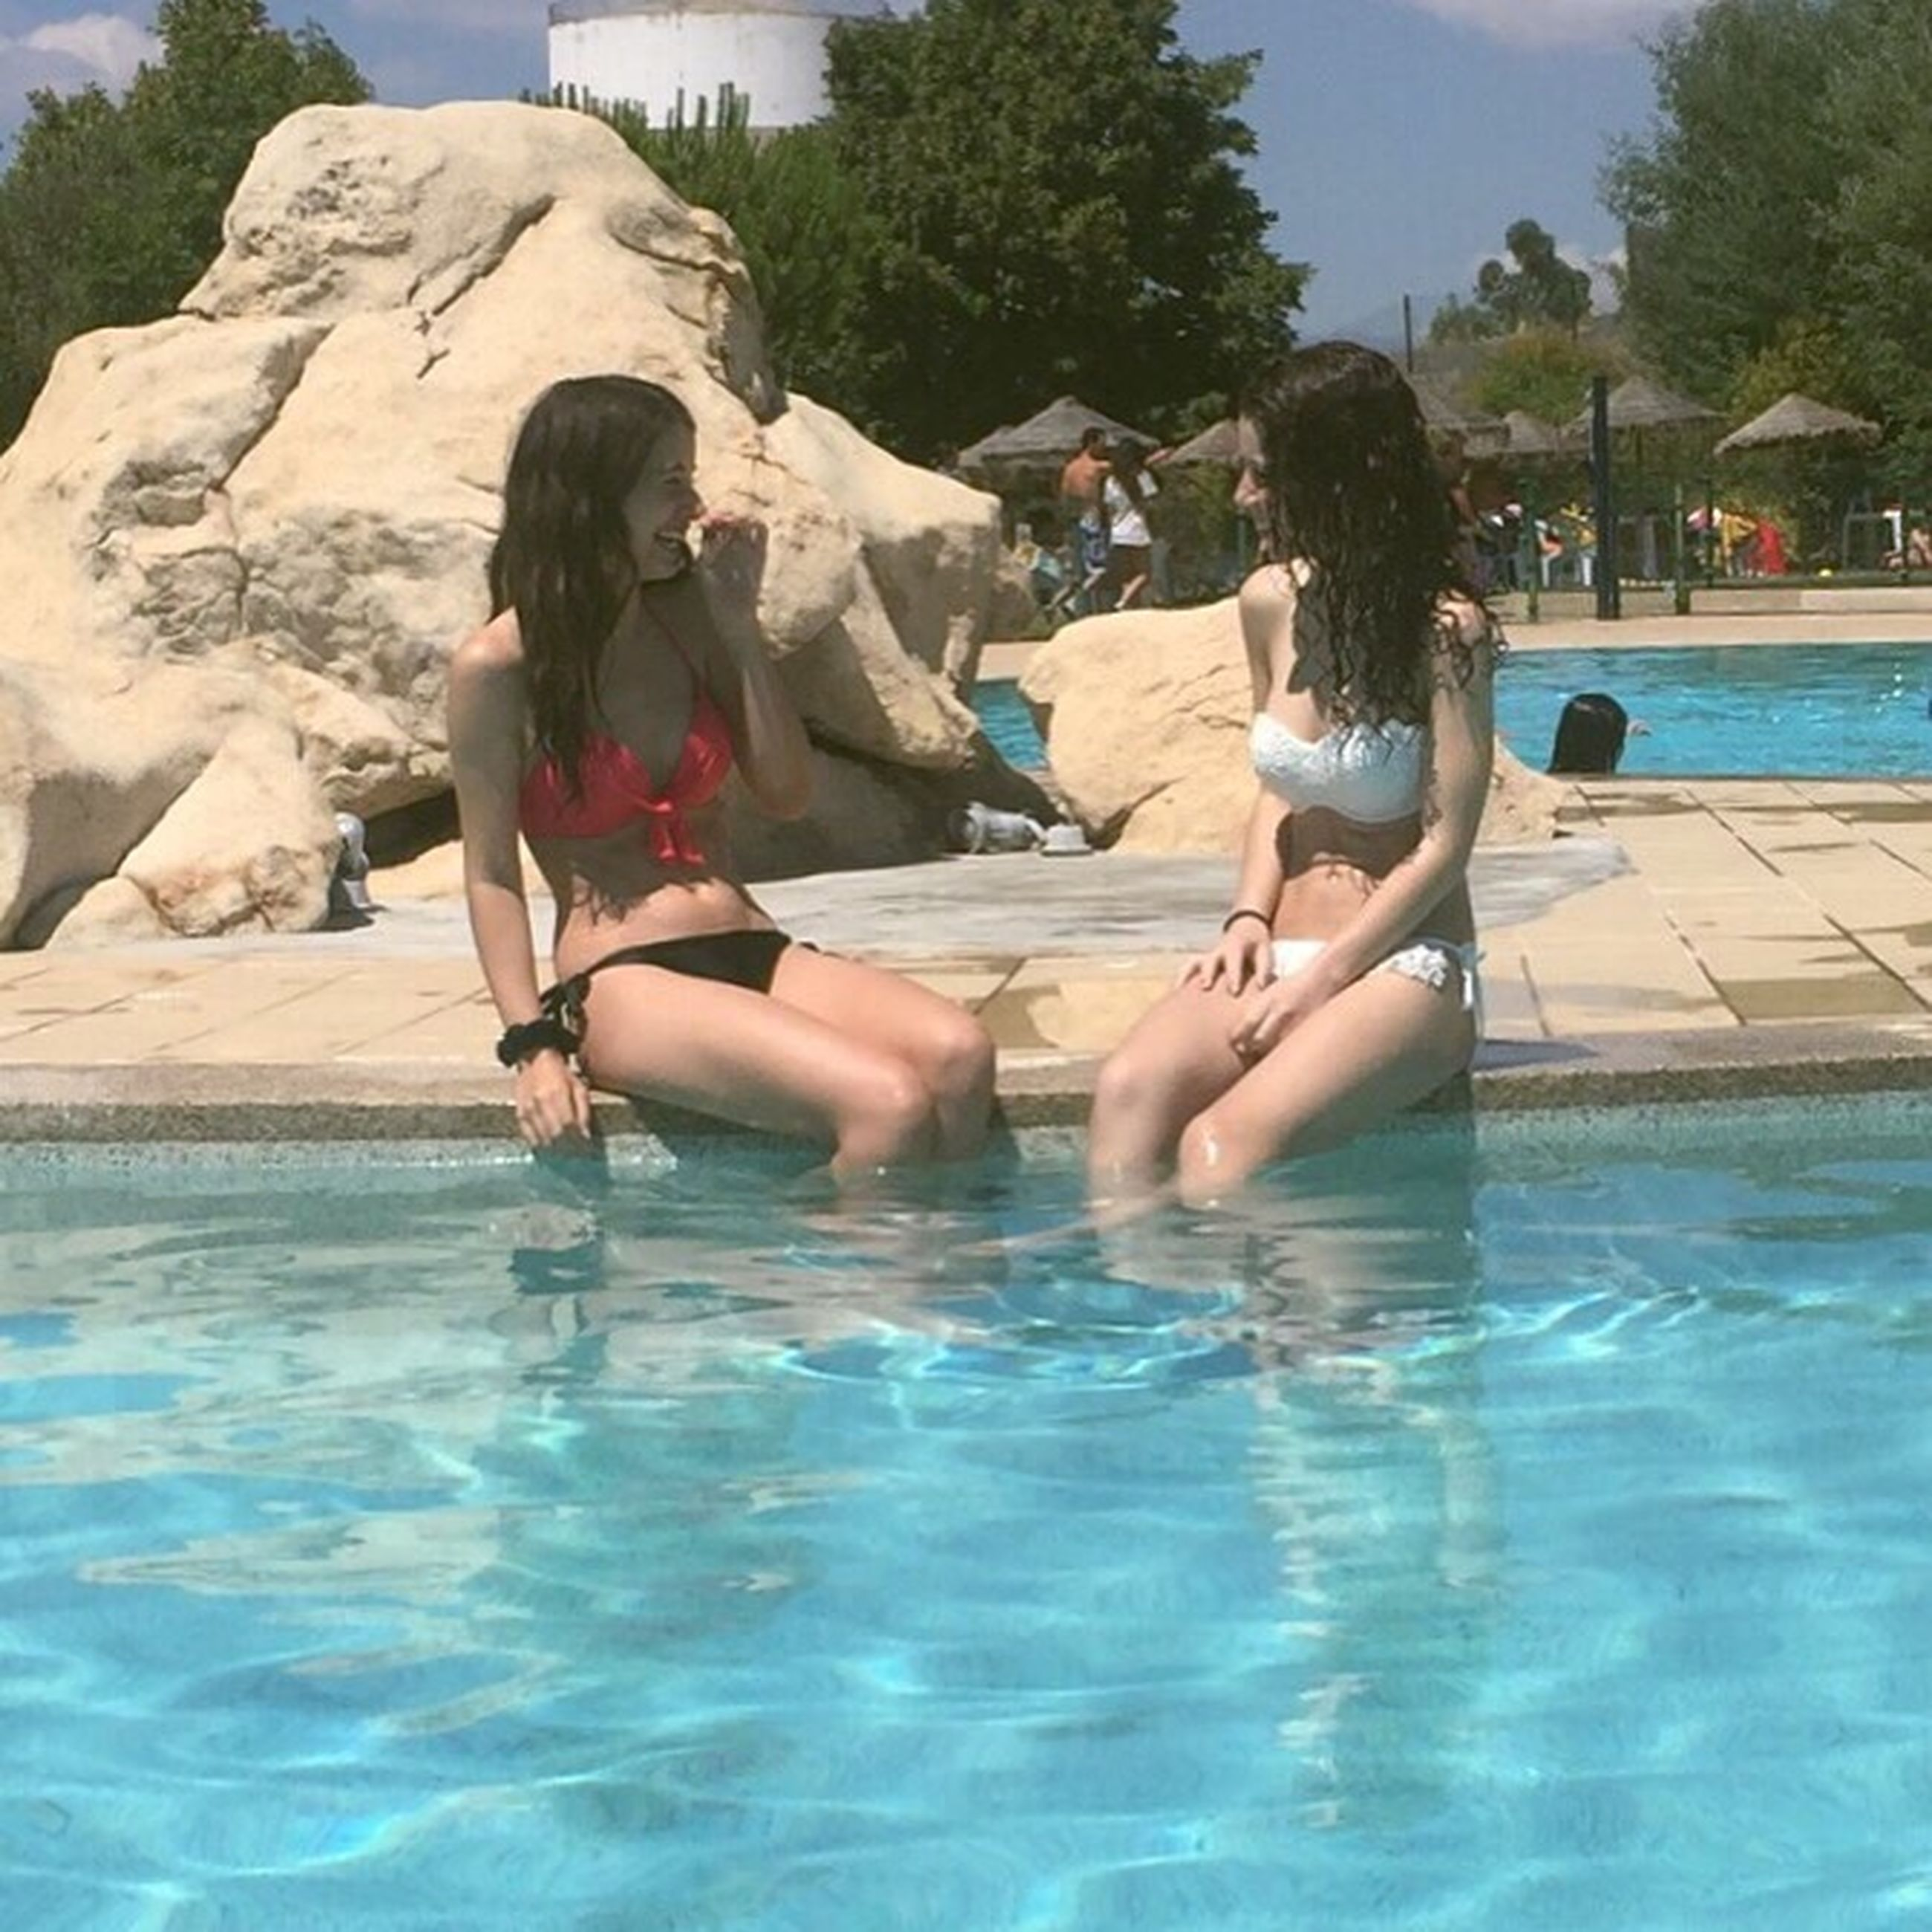 water, lifestyles, leisure activity, enjoyment, swimming pool, vacations, full length, fun, tree, relaxation, summer, casual clothing, day, outdoors, nature, blue, turquoise colored